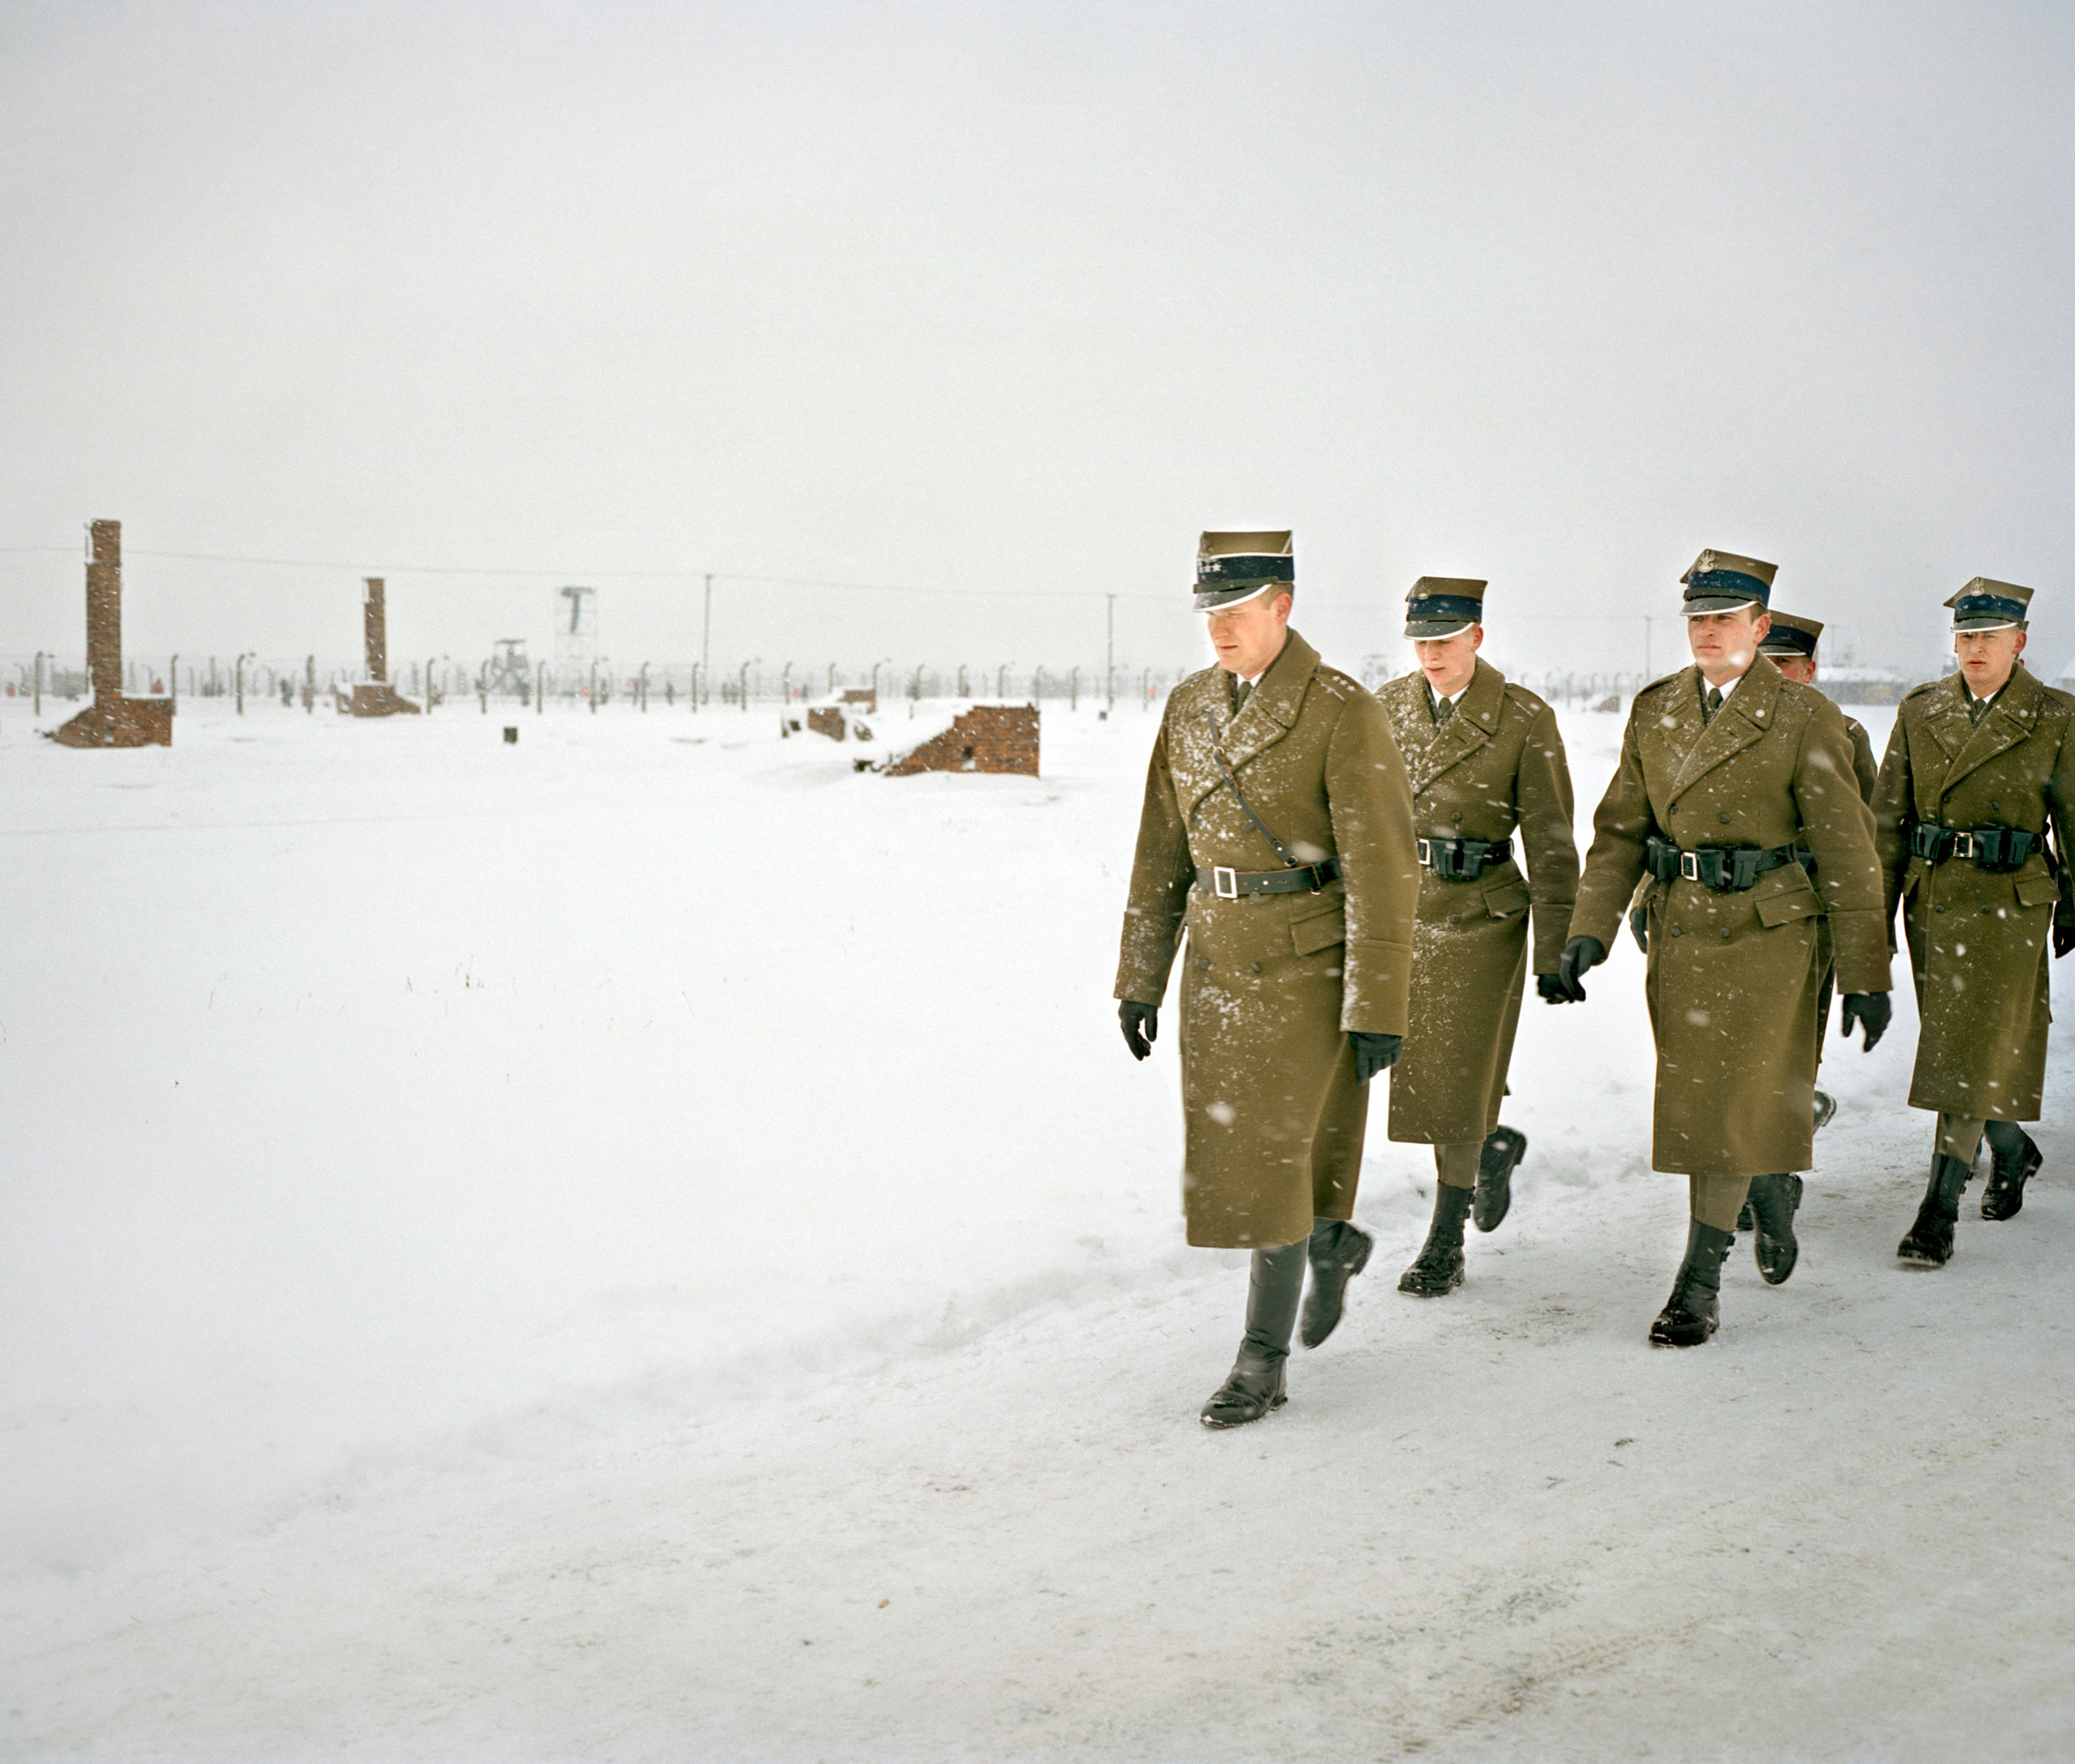 Auschwitz-Birkenau,                                60th anniversary of the camp's liberation, 2005Polish soldiers on the way to the commemoration of the liberation of Auschwitz-Birkenau concentration camp by the Red Army on Jan. 27, 1945.